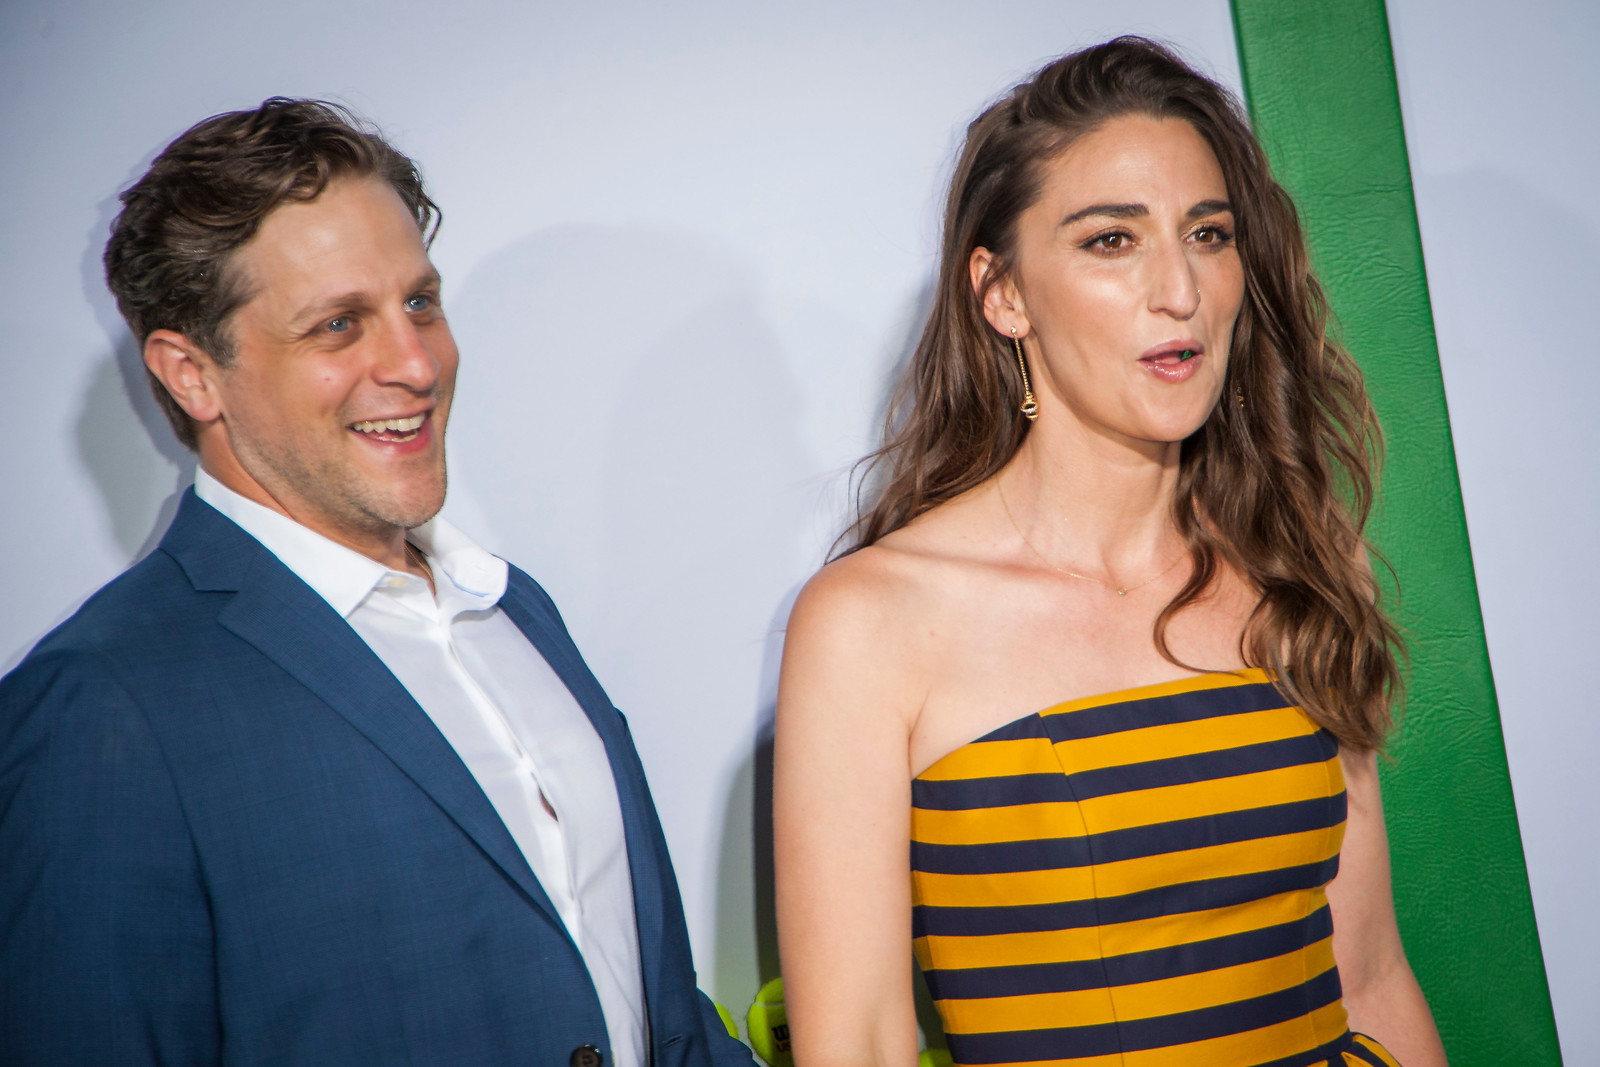 WESTWOOD, CA - SEPTEMBER 16: Musician Sara Bareilles (L) and Joe Tippett attend the premiere of Fox Searchlight Pictures' 'Battle Of The Sexes' at Regency Village Theatre on Saturday, September 16, 2017 in Westwood, California. (Photo by Tom Sorensen/Moovieboy Pictures)